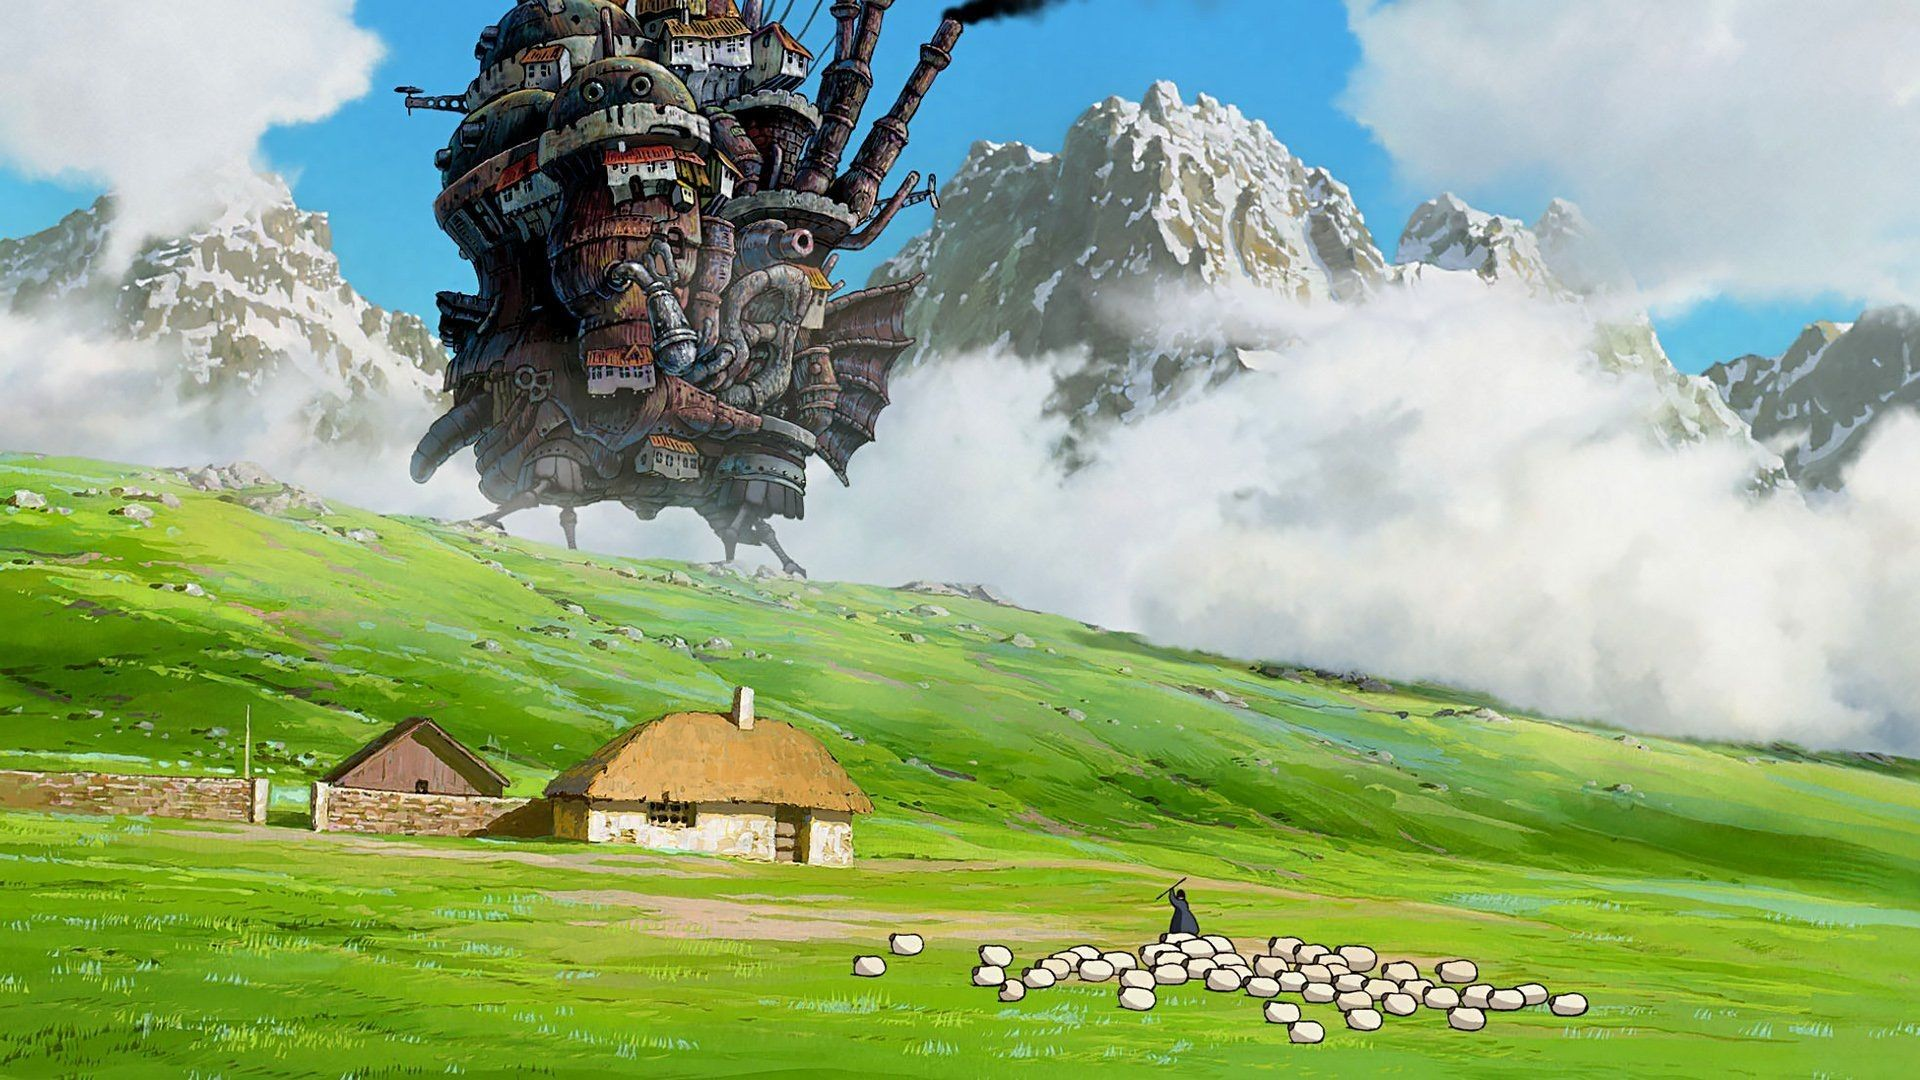 1920x1080 Howl S Moving Castle Hd Wallpapers Howls Moving Castle Howl S Moving Castle Studio Ghibli